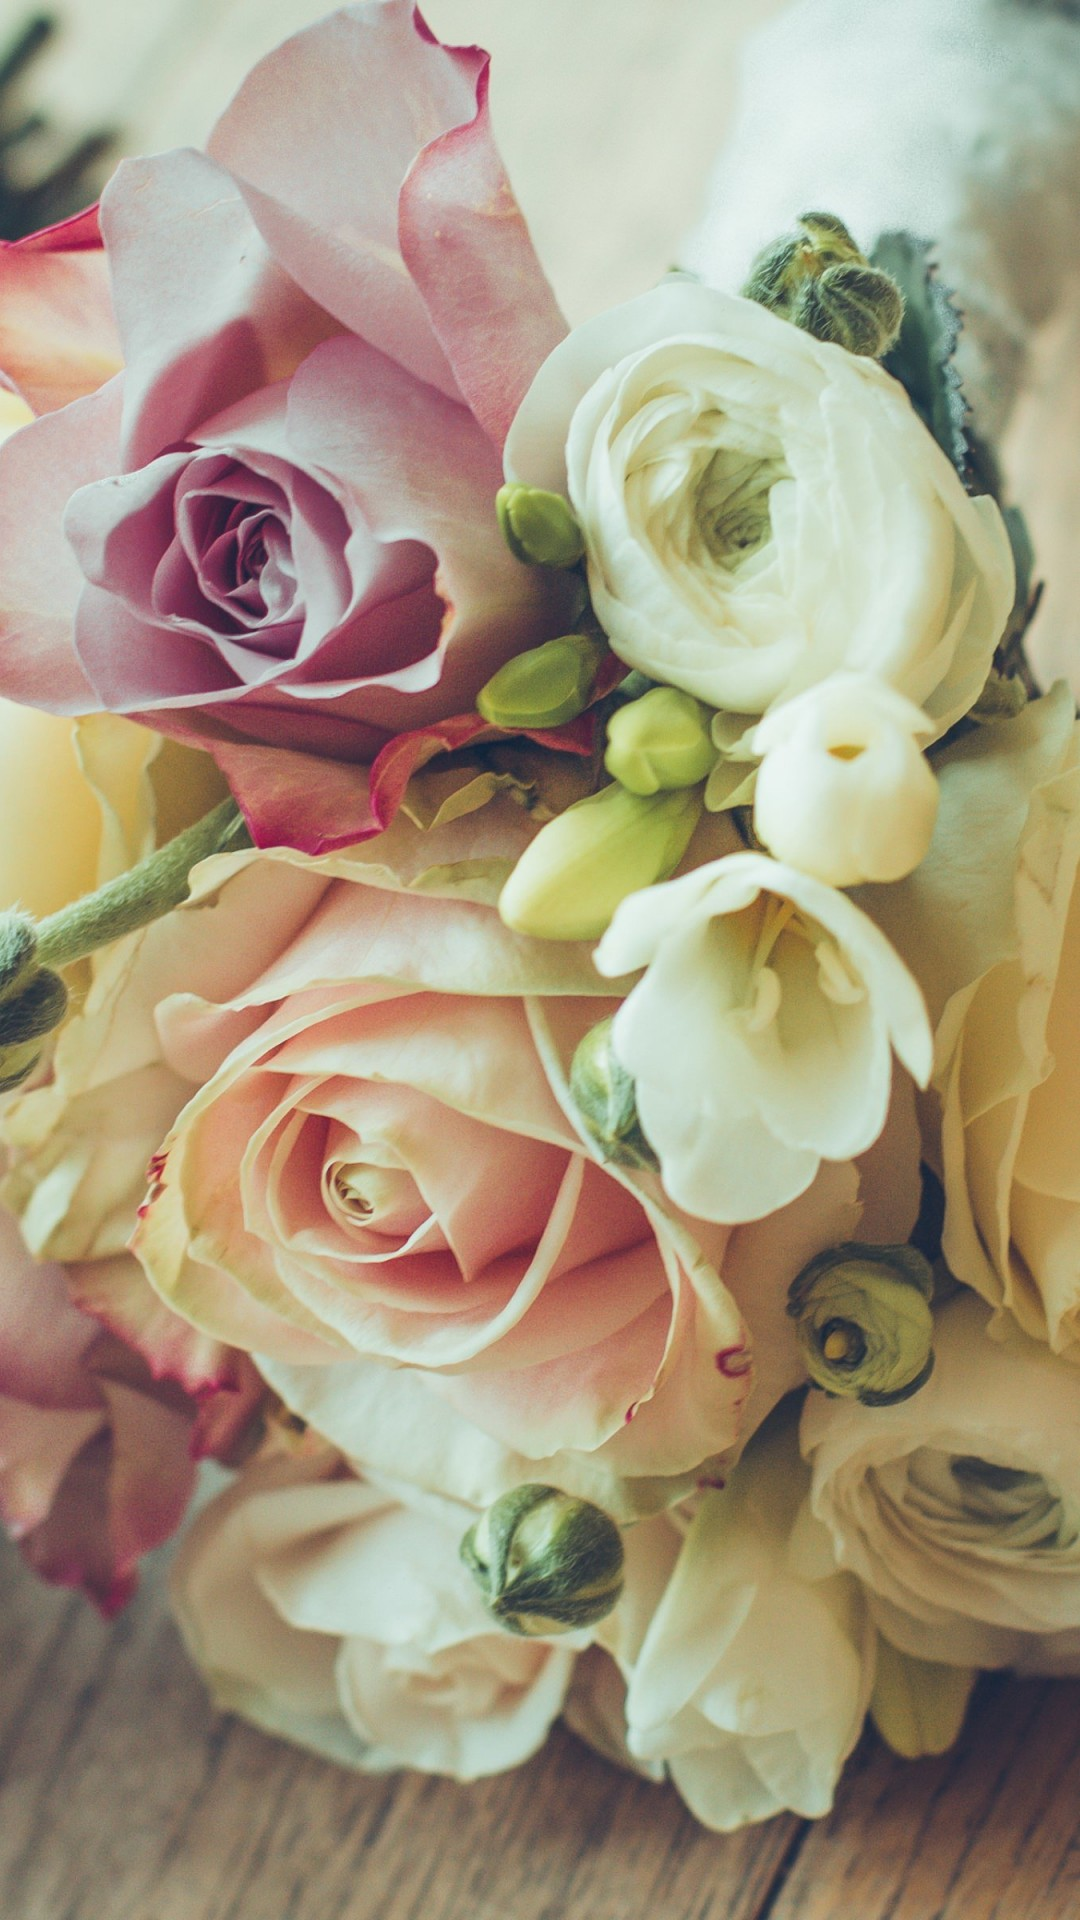 Roses Bouquet Composition Wallpaper for SONY Xperia Z1